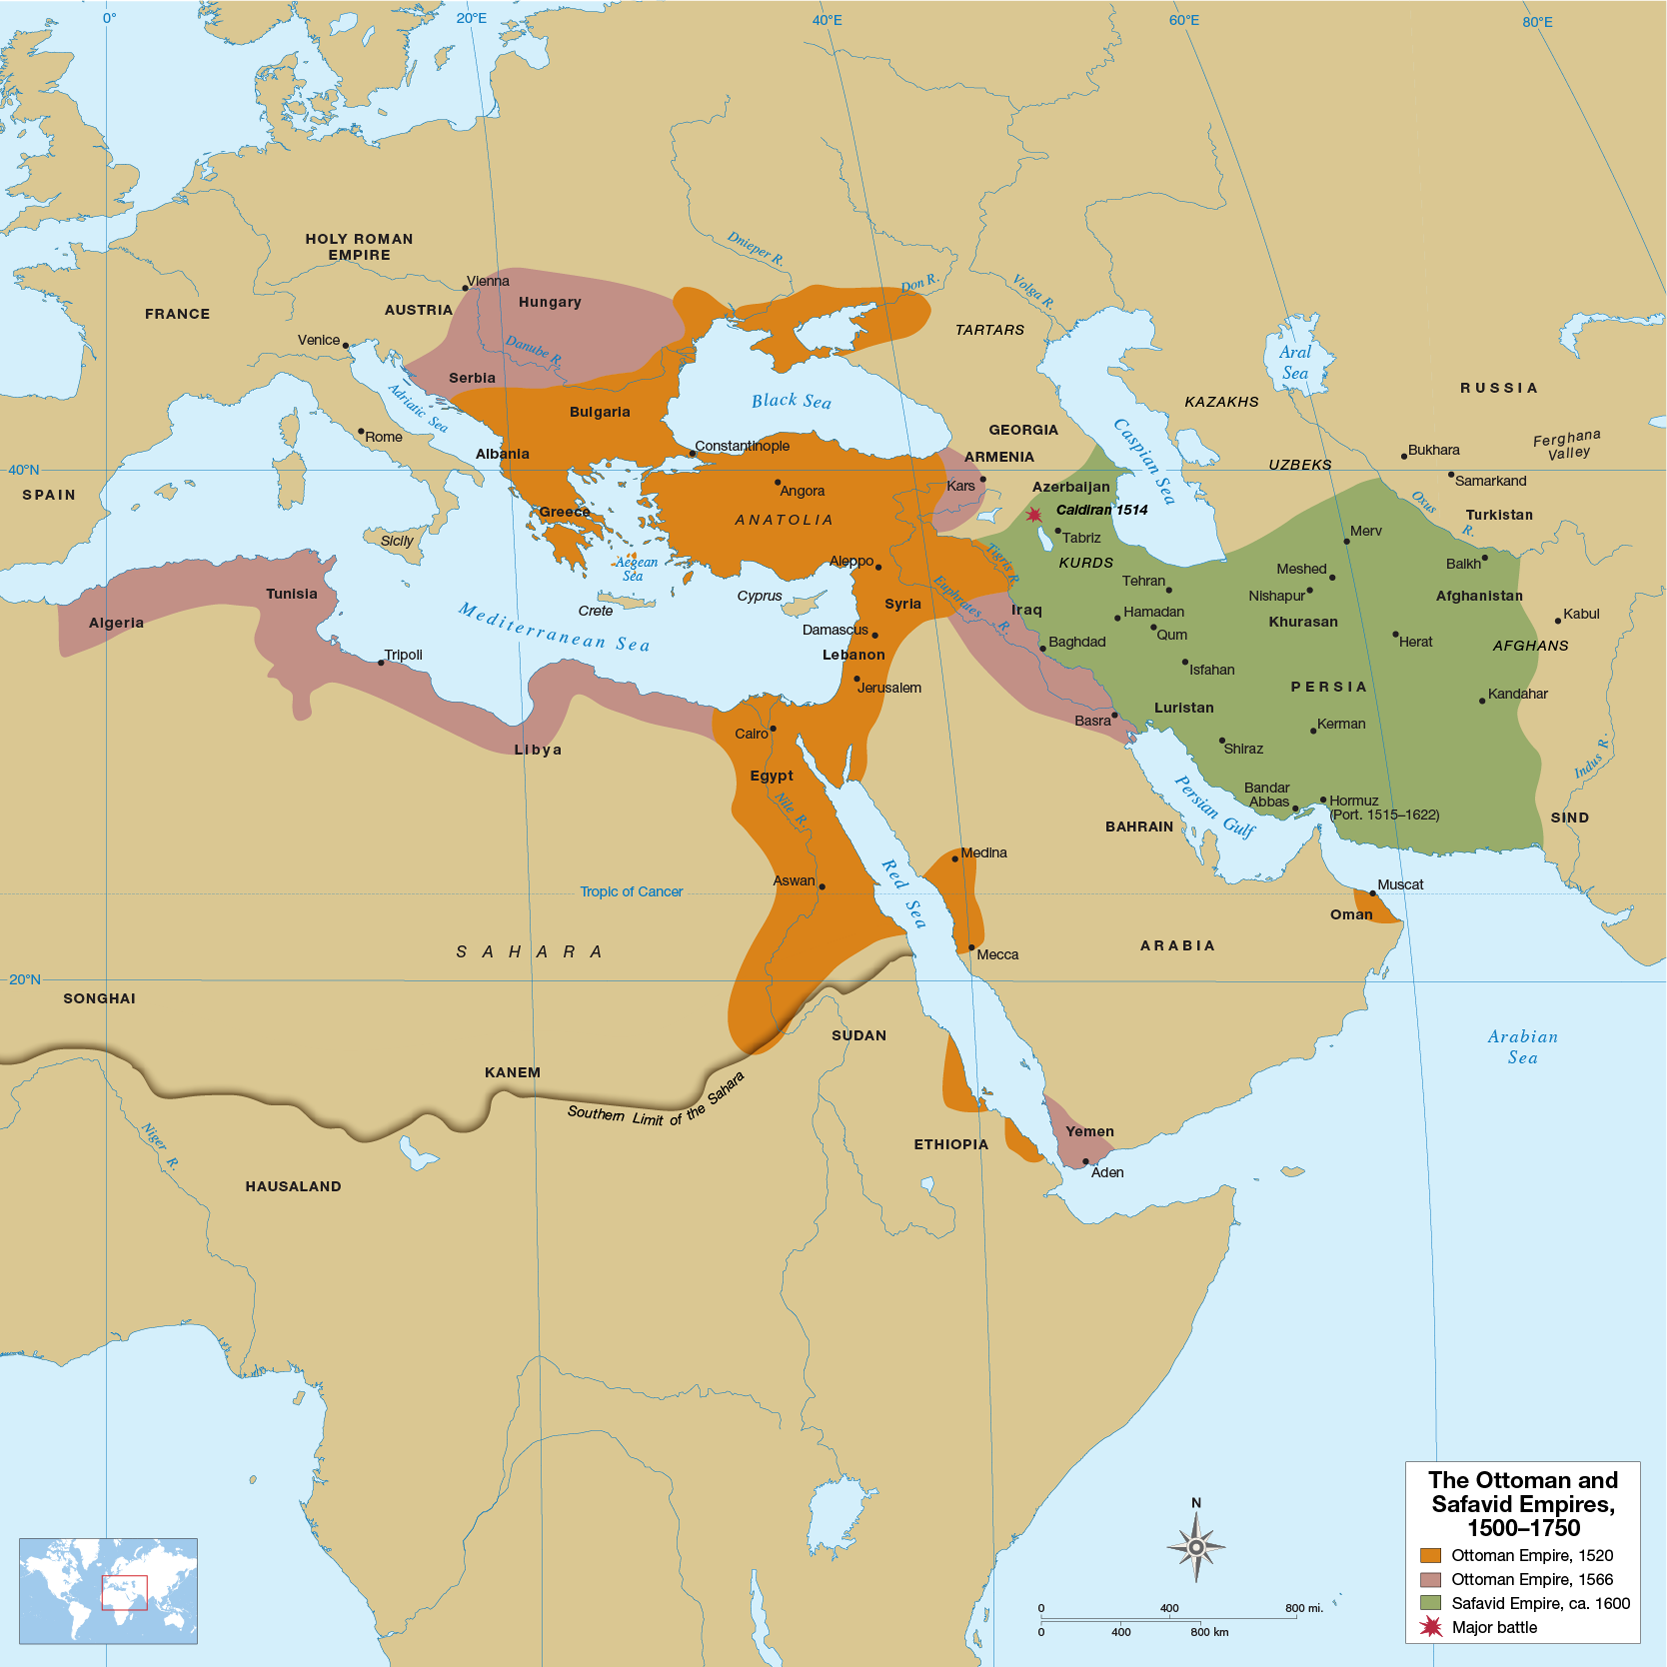 By the later 1500s the Ottoman Empire included large parts of western Asia, southeastern Europe, southern Russia, and North Africa. The Ottomans' major rivals, the Safavids, controlled Persia and parts of Iraq, the Caucasus, Afghanistan, and Central Asia.